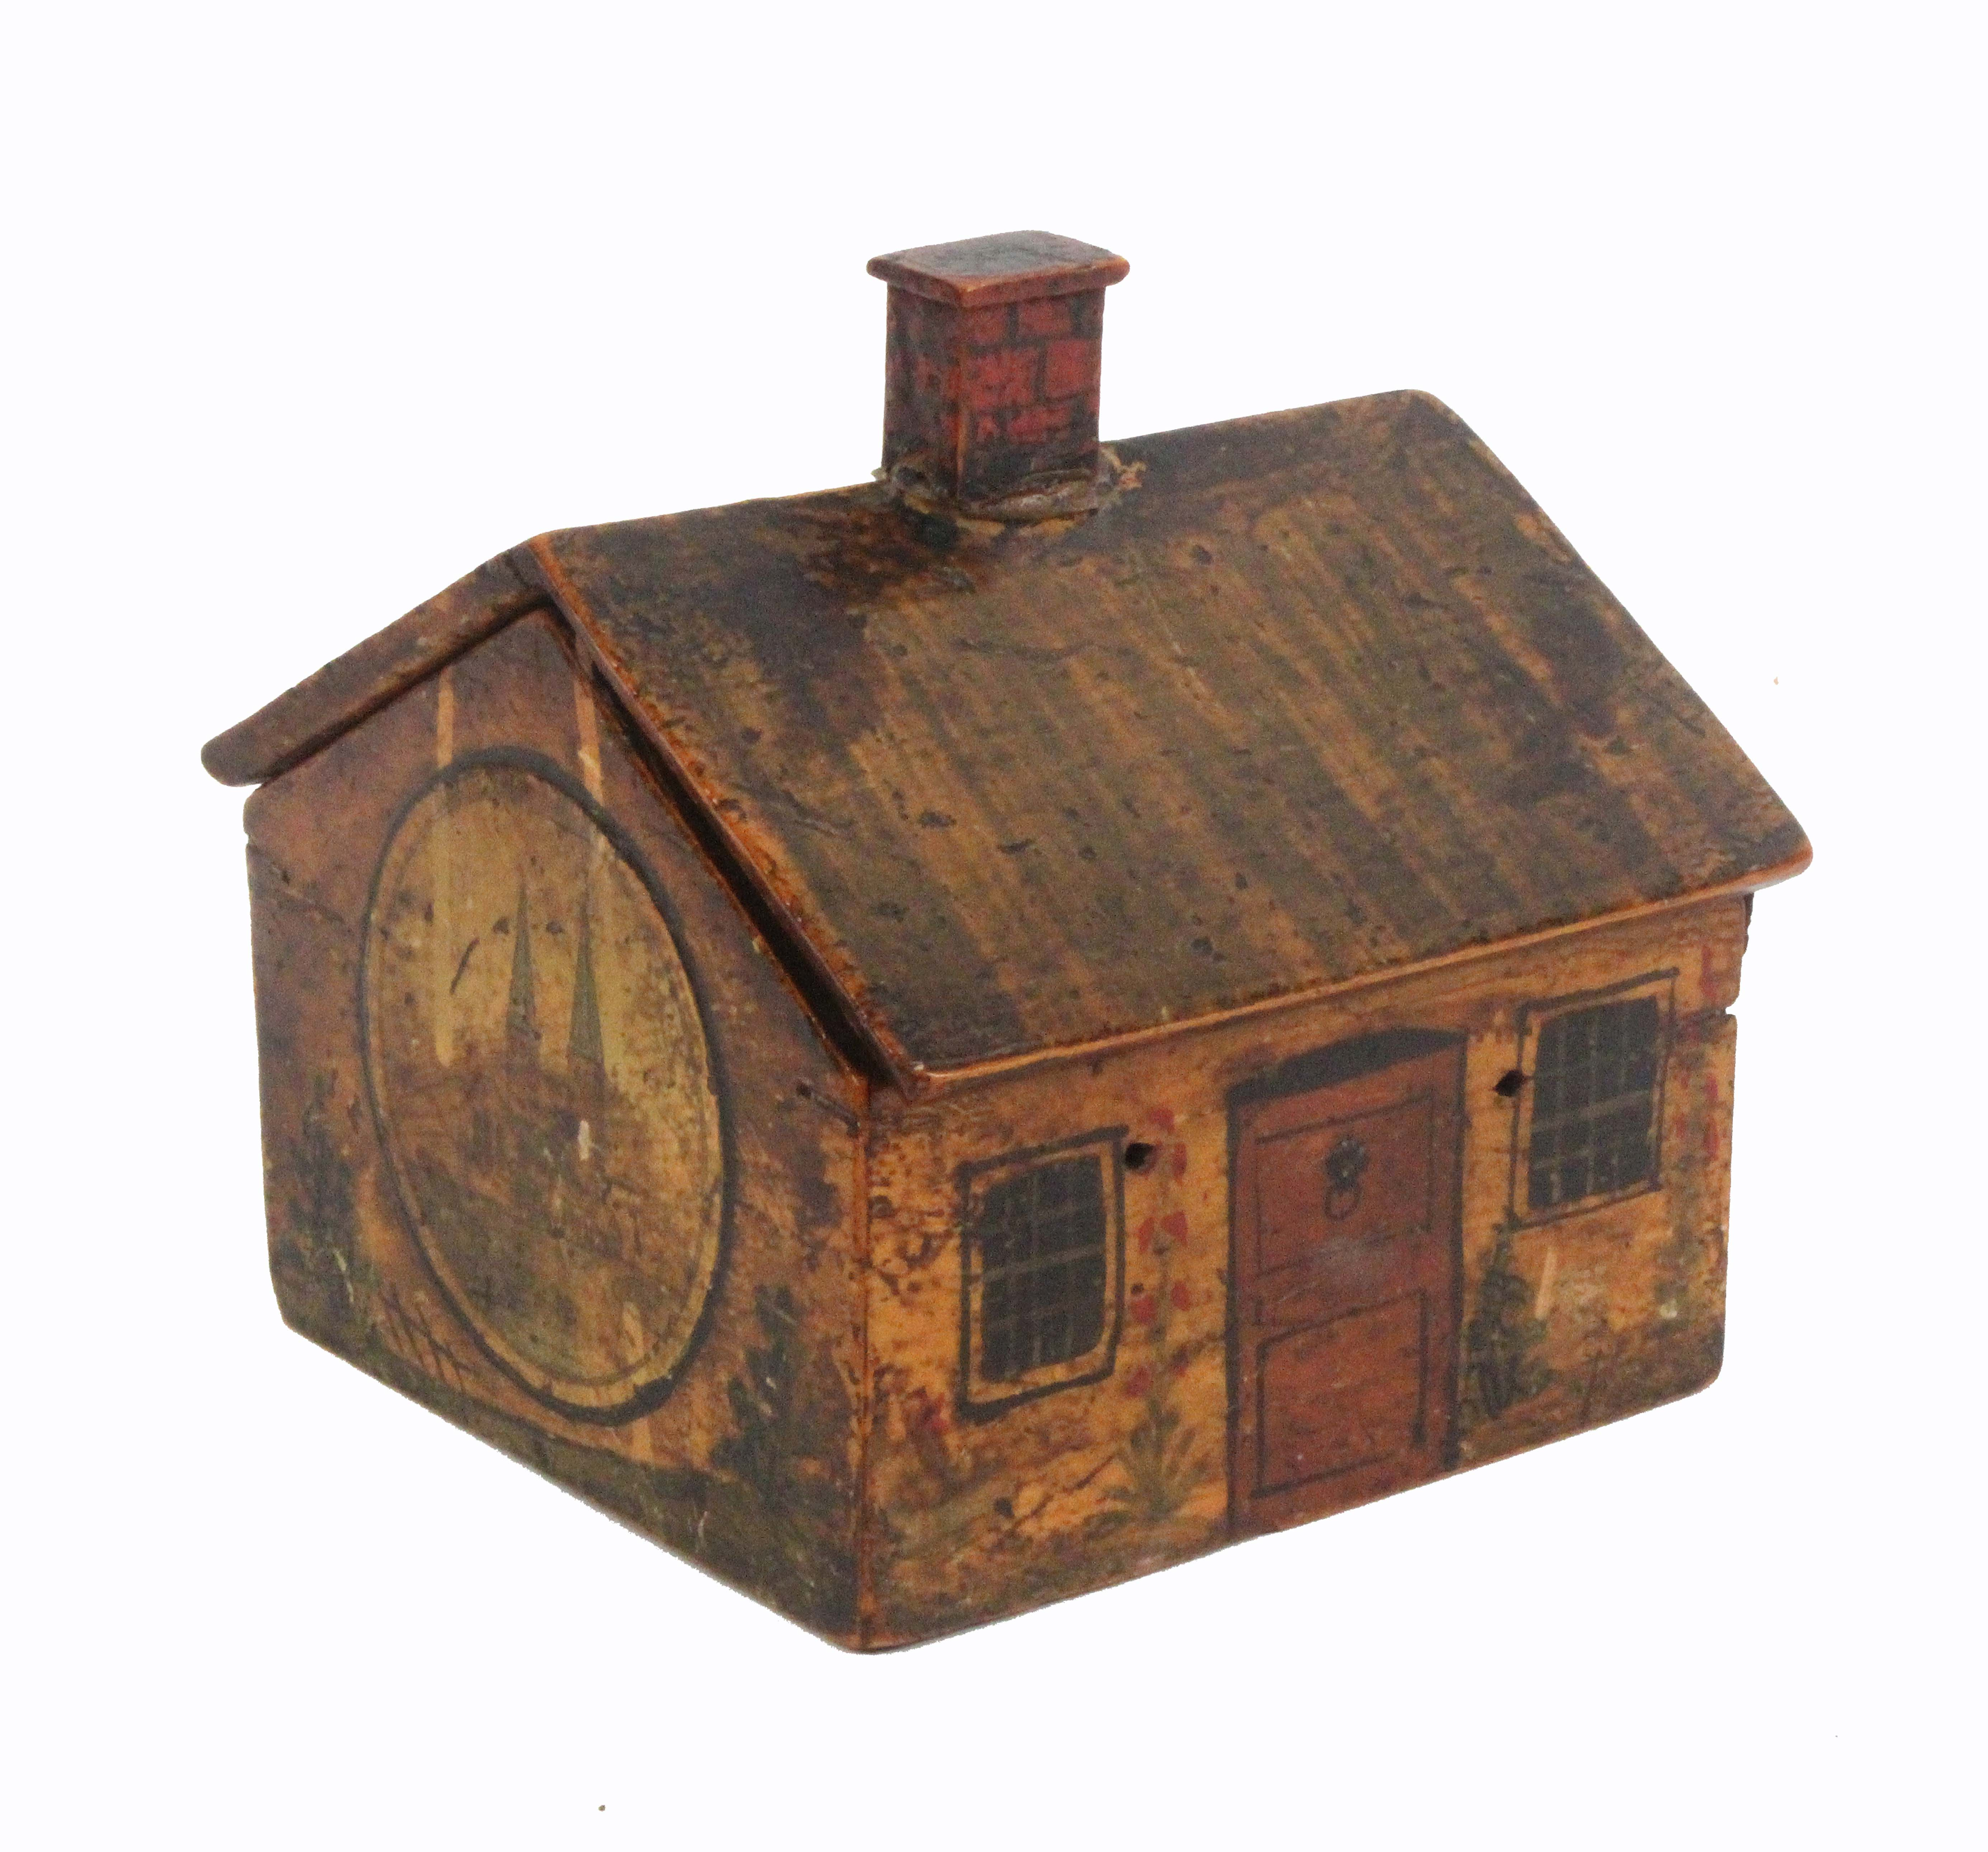 Lot 17 - A rare early Tunbridge ware painted and print decorated cottage reel box, the sloping roof with